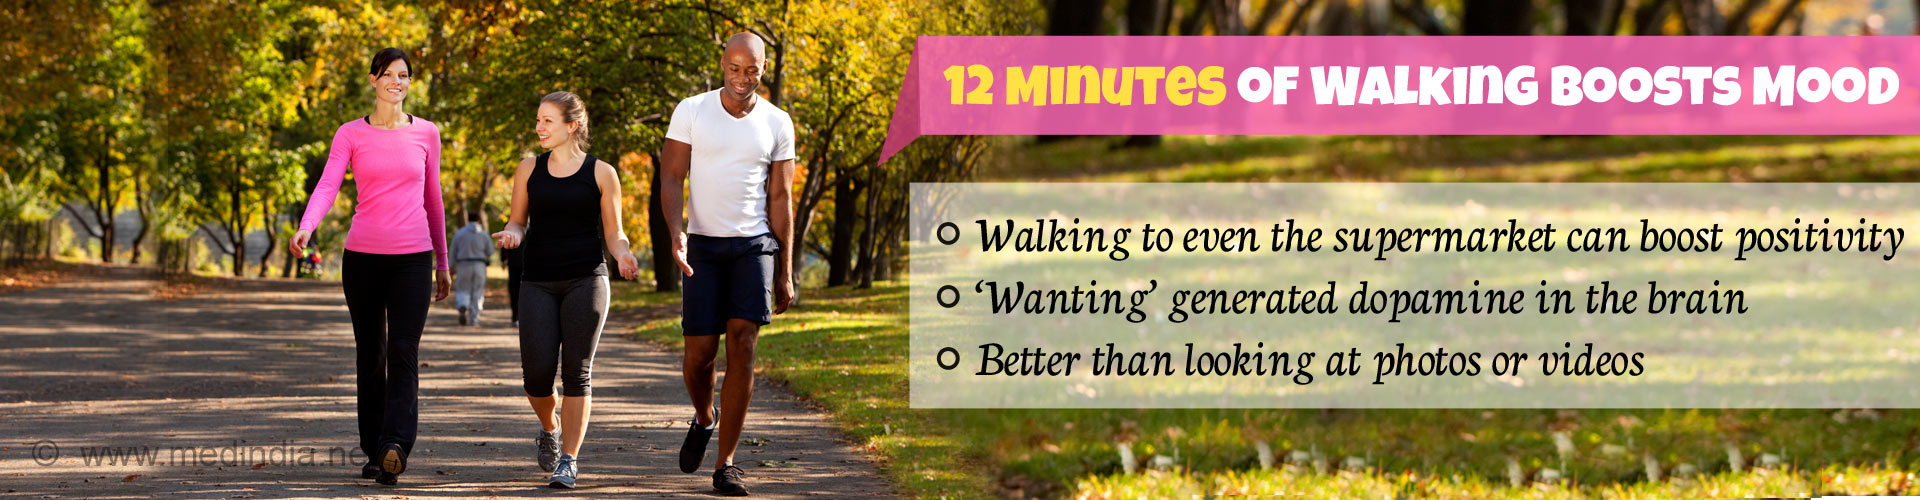 Walk 12 Minutes Daily to Boost Your Mood